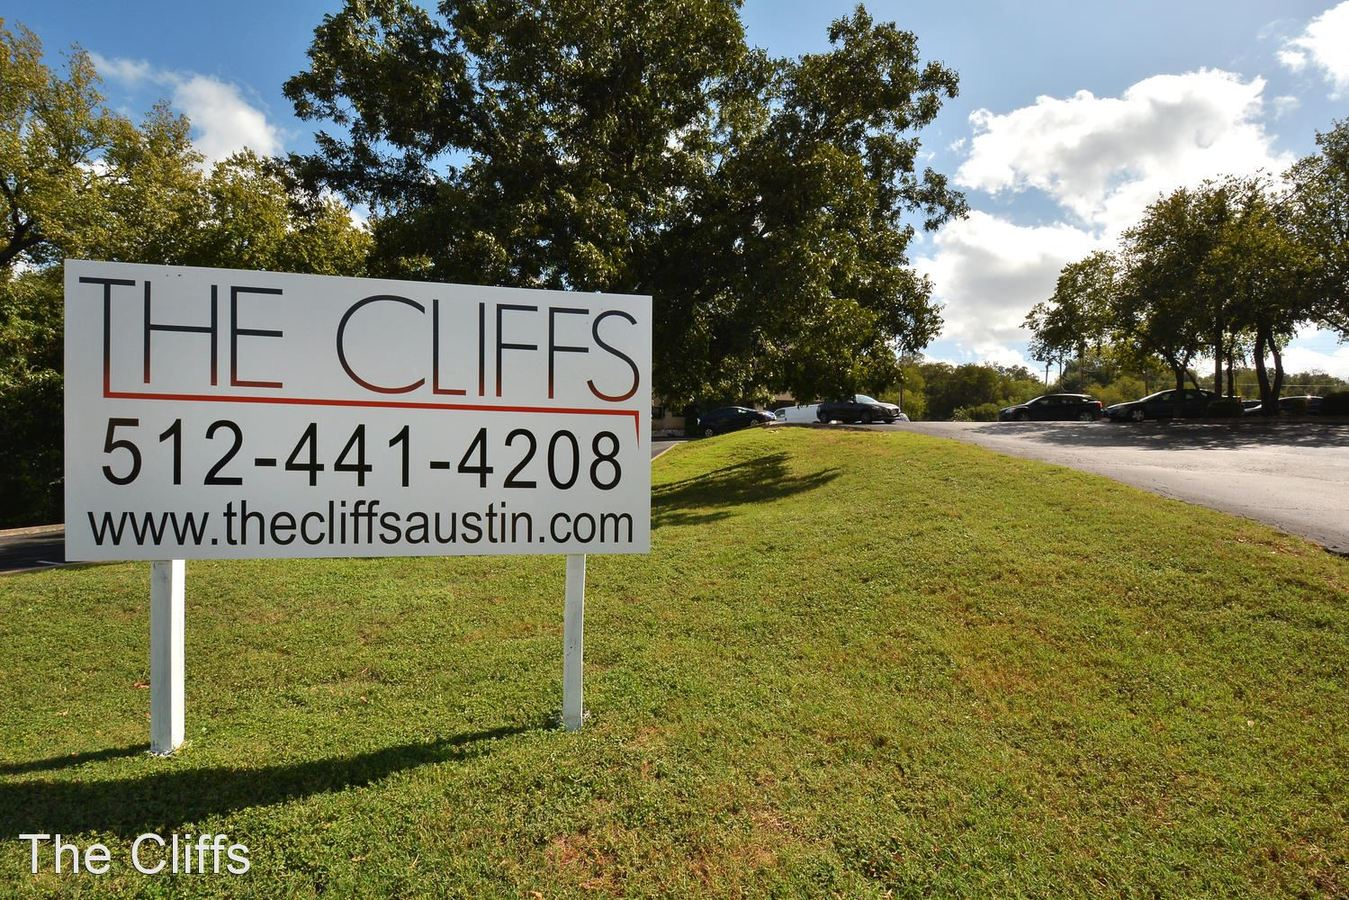 1 Bedroom 1 Bathroom Apartment for rent at The Cliffs Apartments in Austin, TX